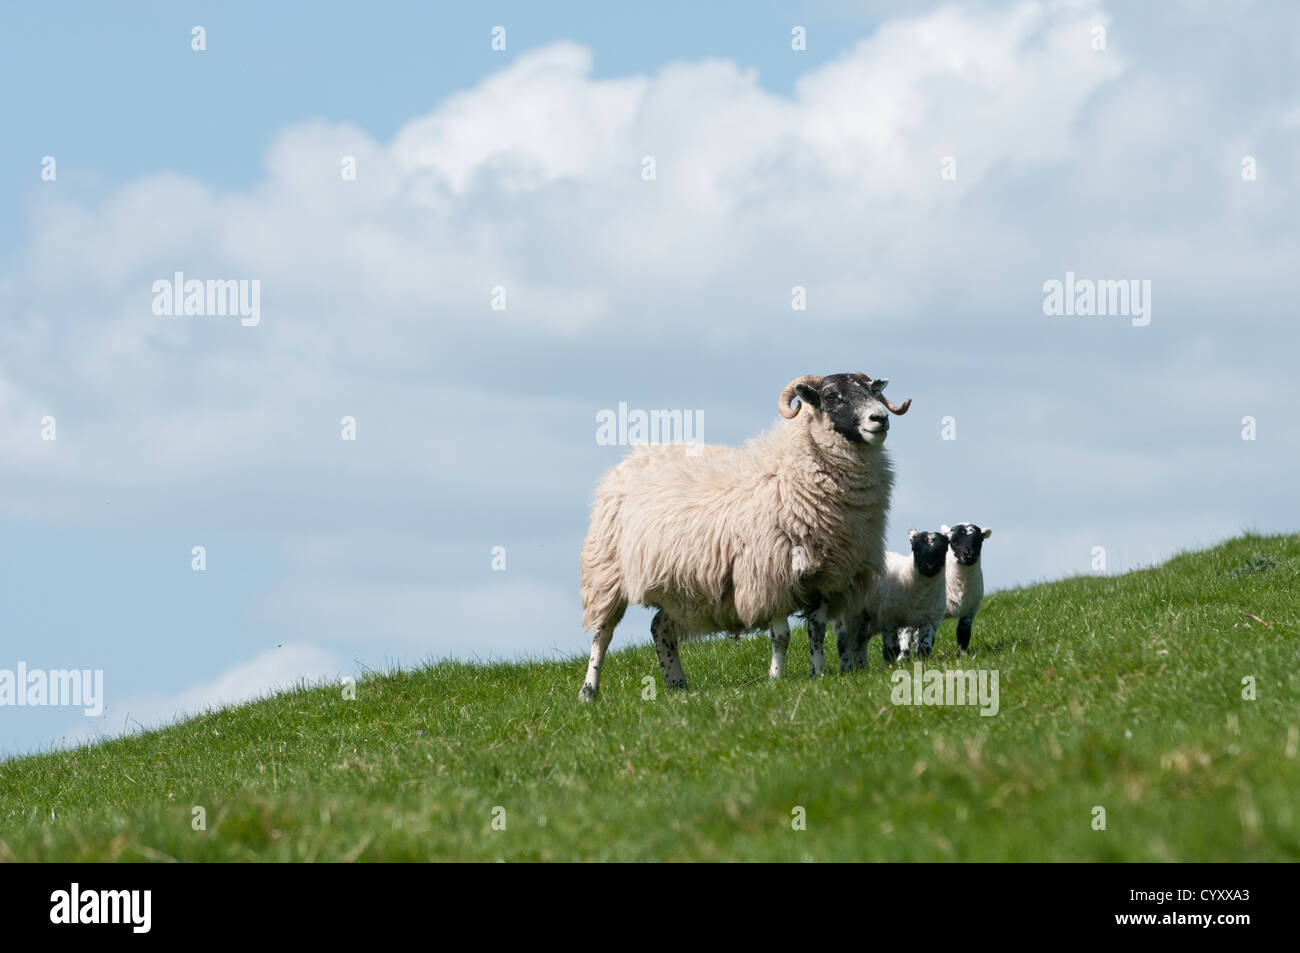 Scottish blackface sheep and new born lamb on hillside with blue sky and green grass, with horns and black face - Stock Image